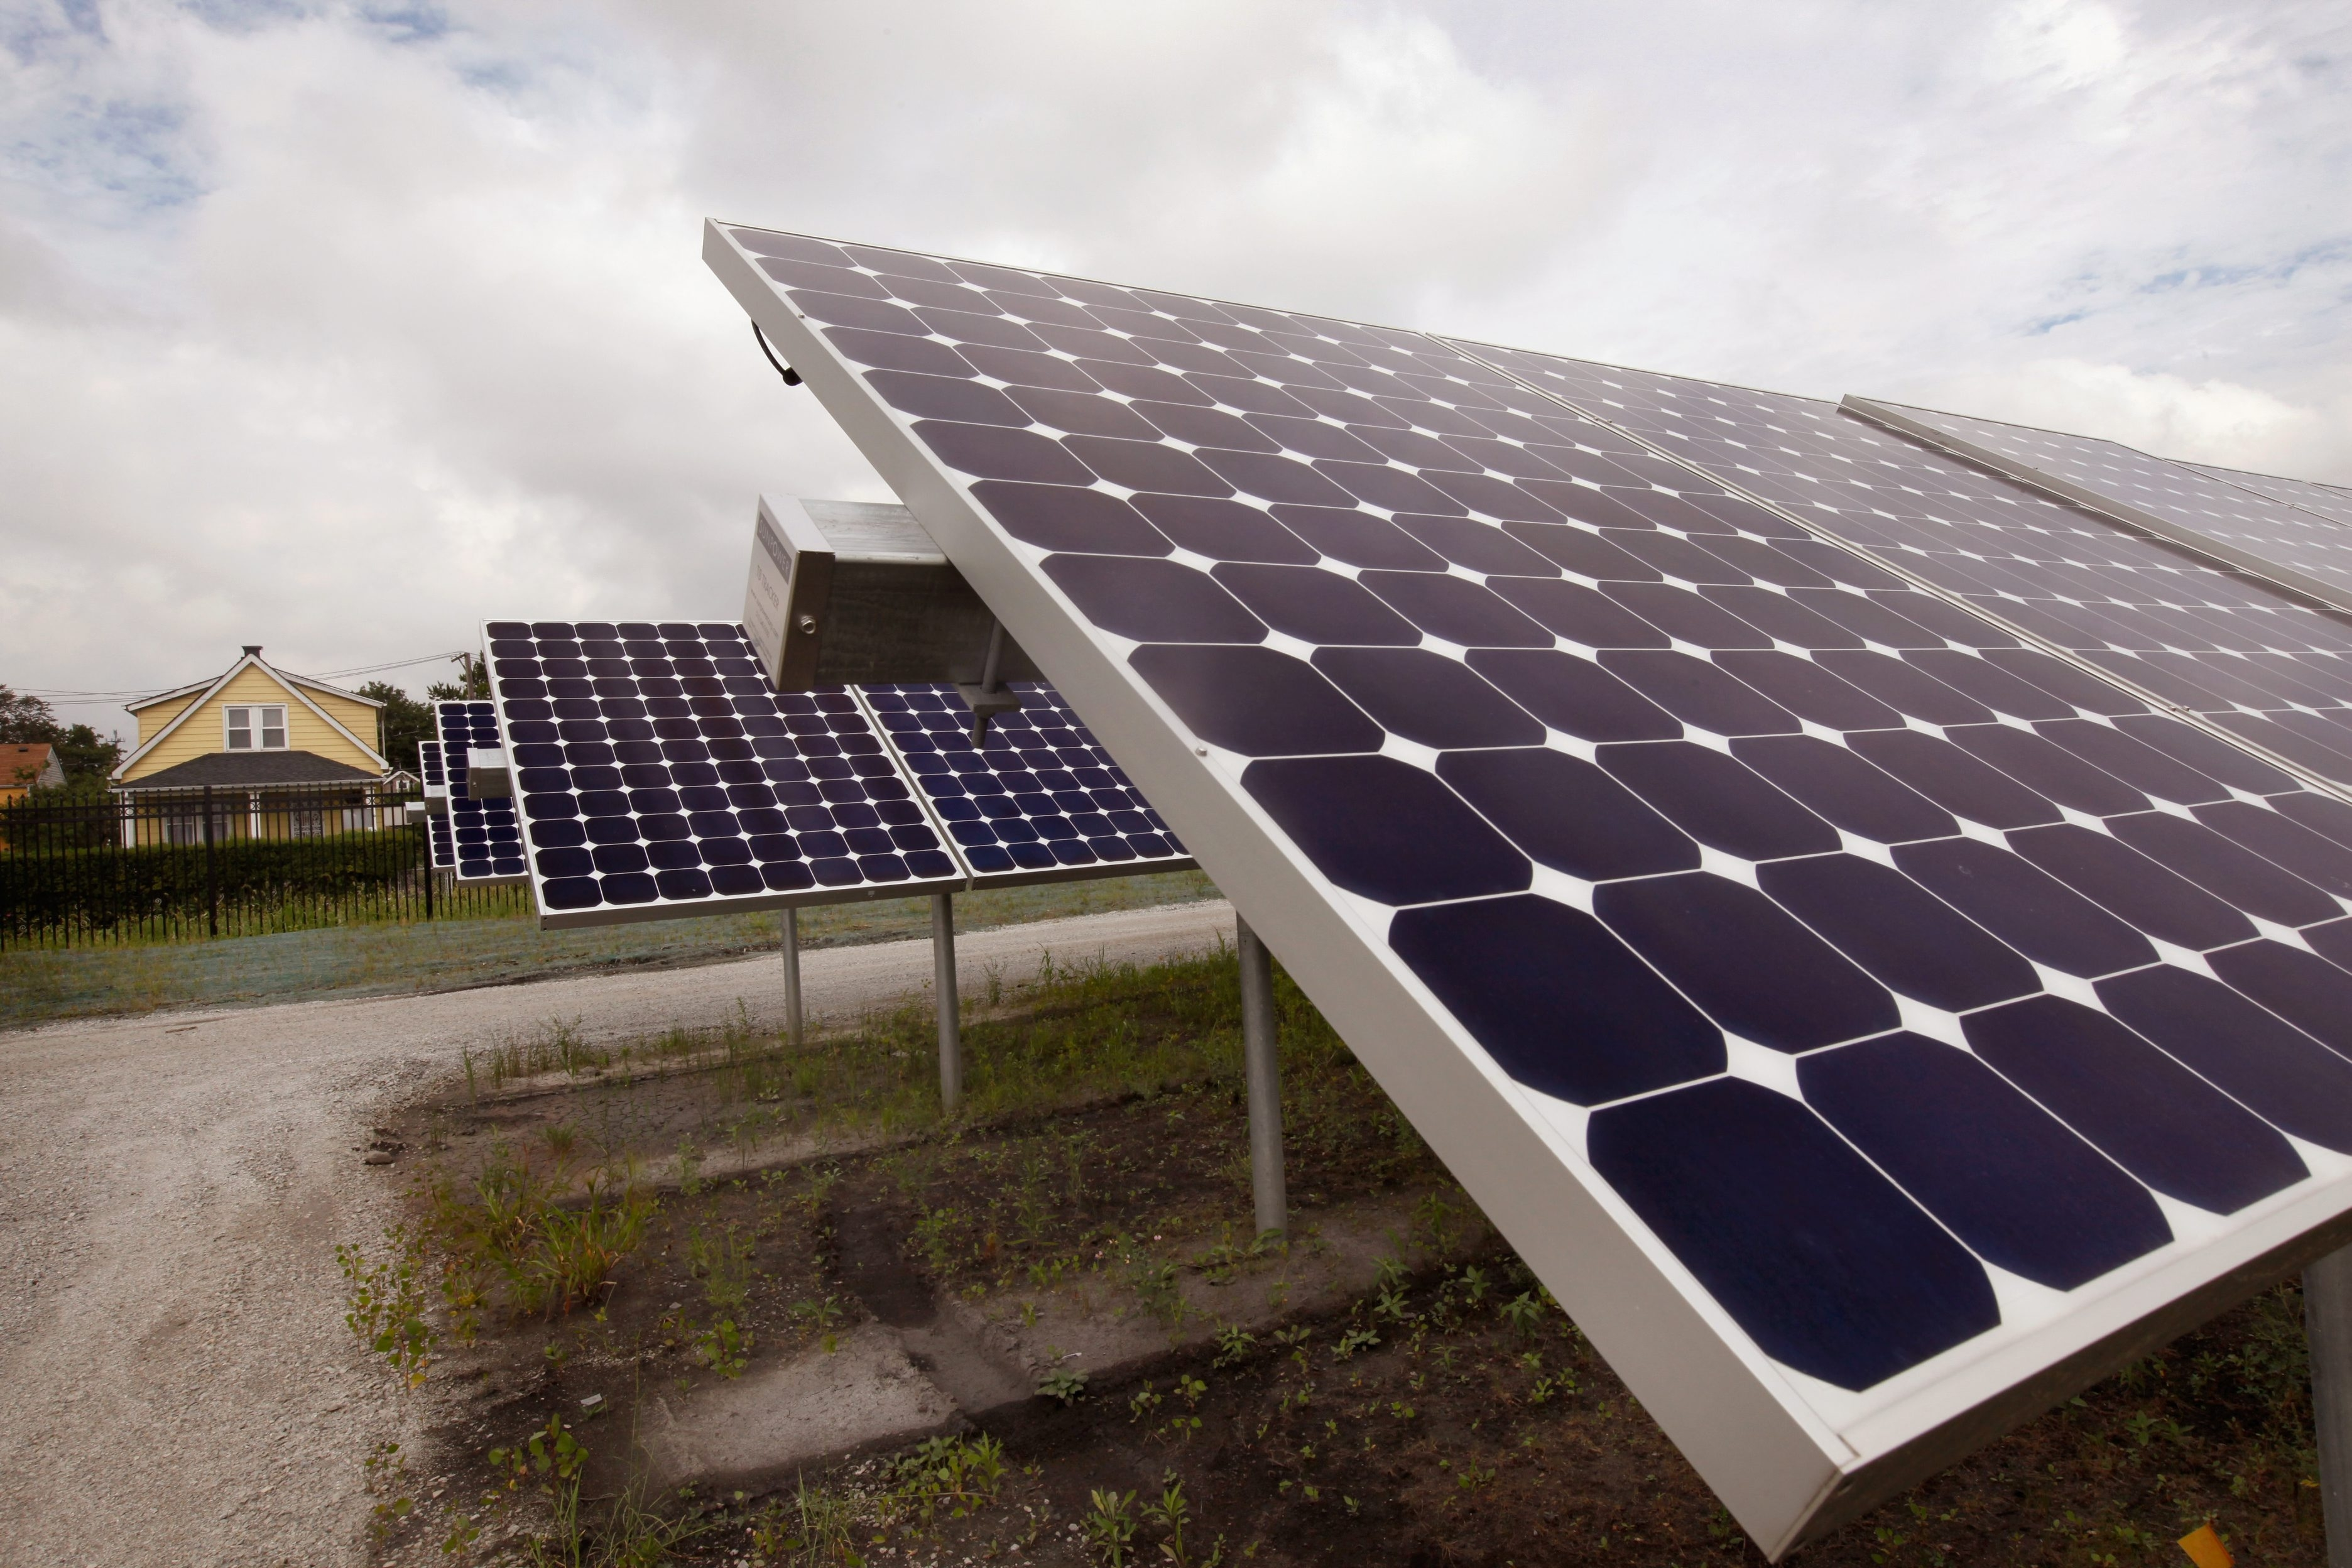 As solar panels become more and more common, communities will have to decide what kind of limits should govern installations. (Getty Images file photo)